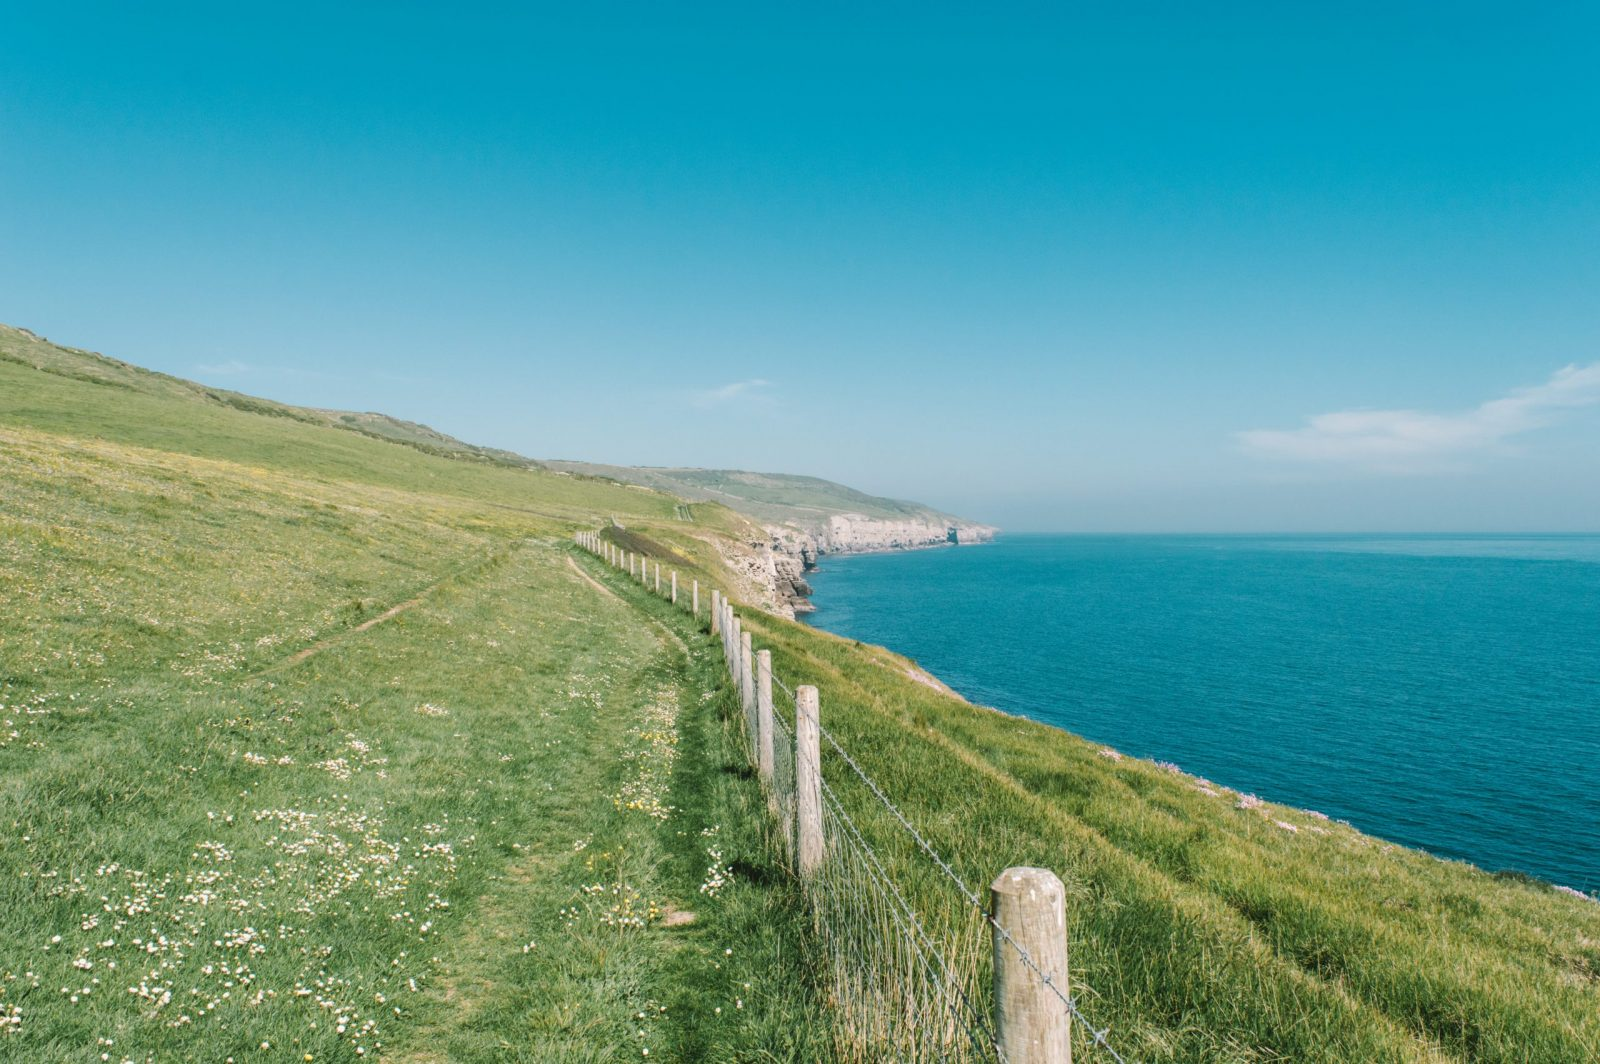 Jurassic coast walk the dancing ledge staycations in the UK